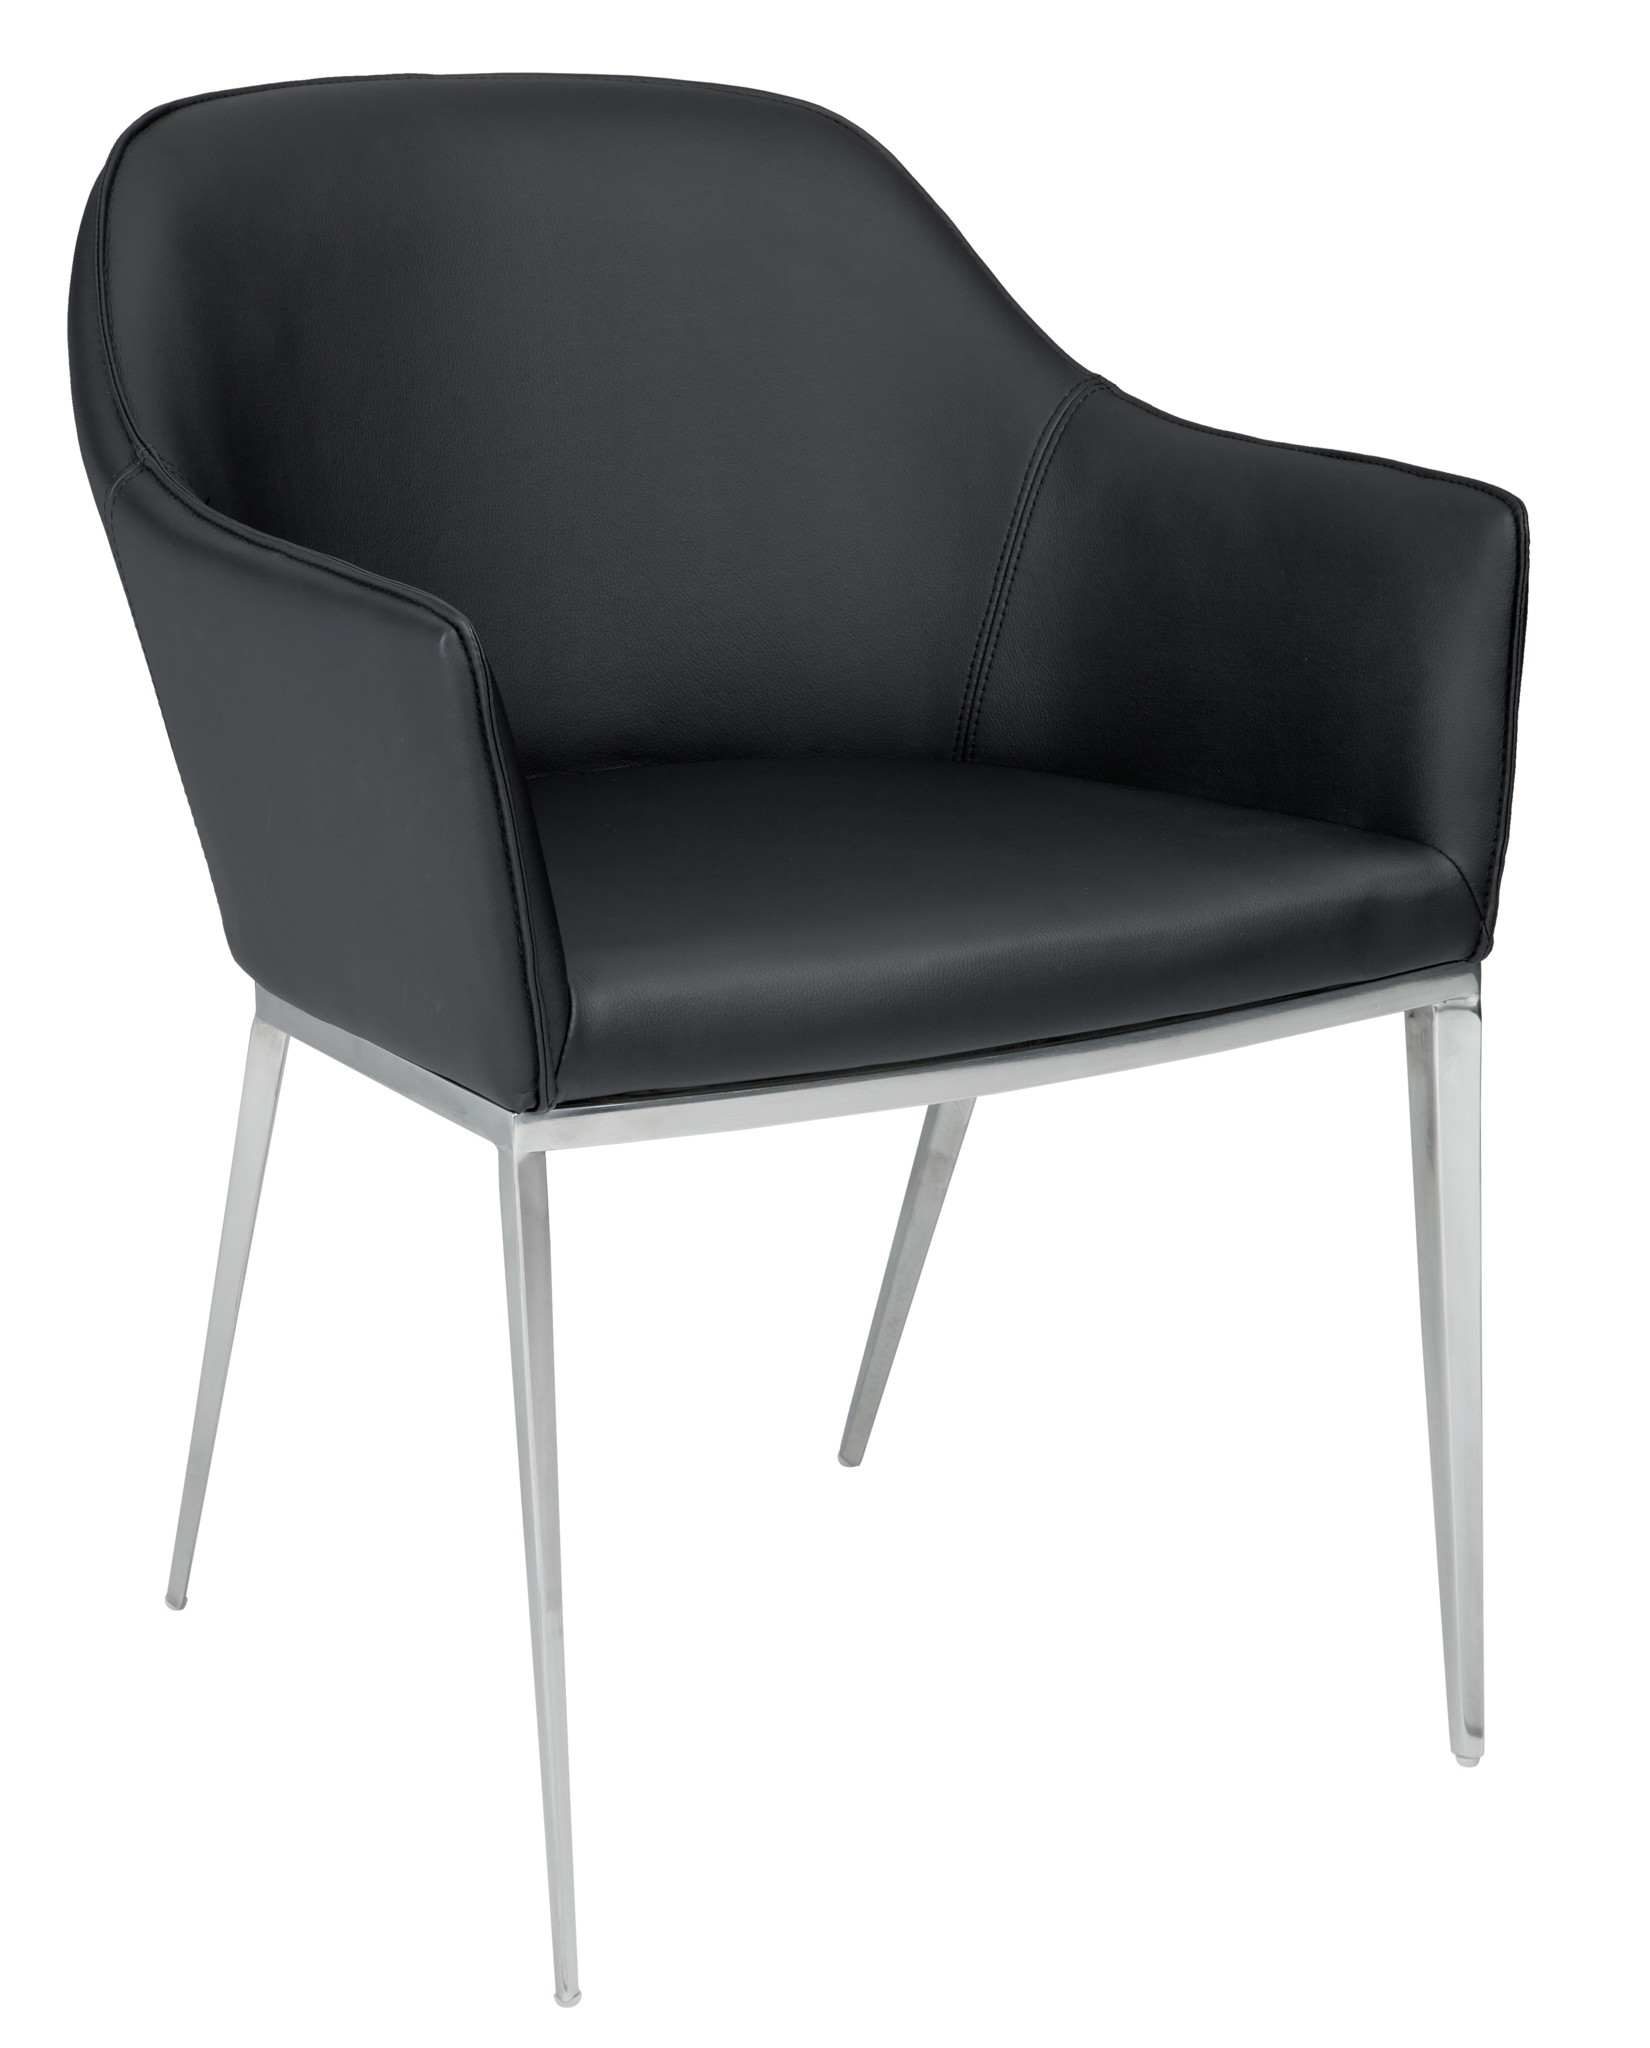 Stanis Black Armchair From Sunpan 13022 Coleman Furniture